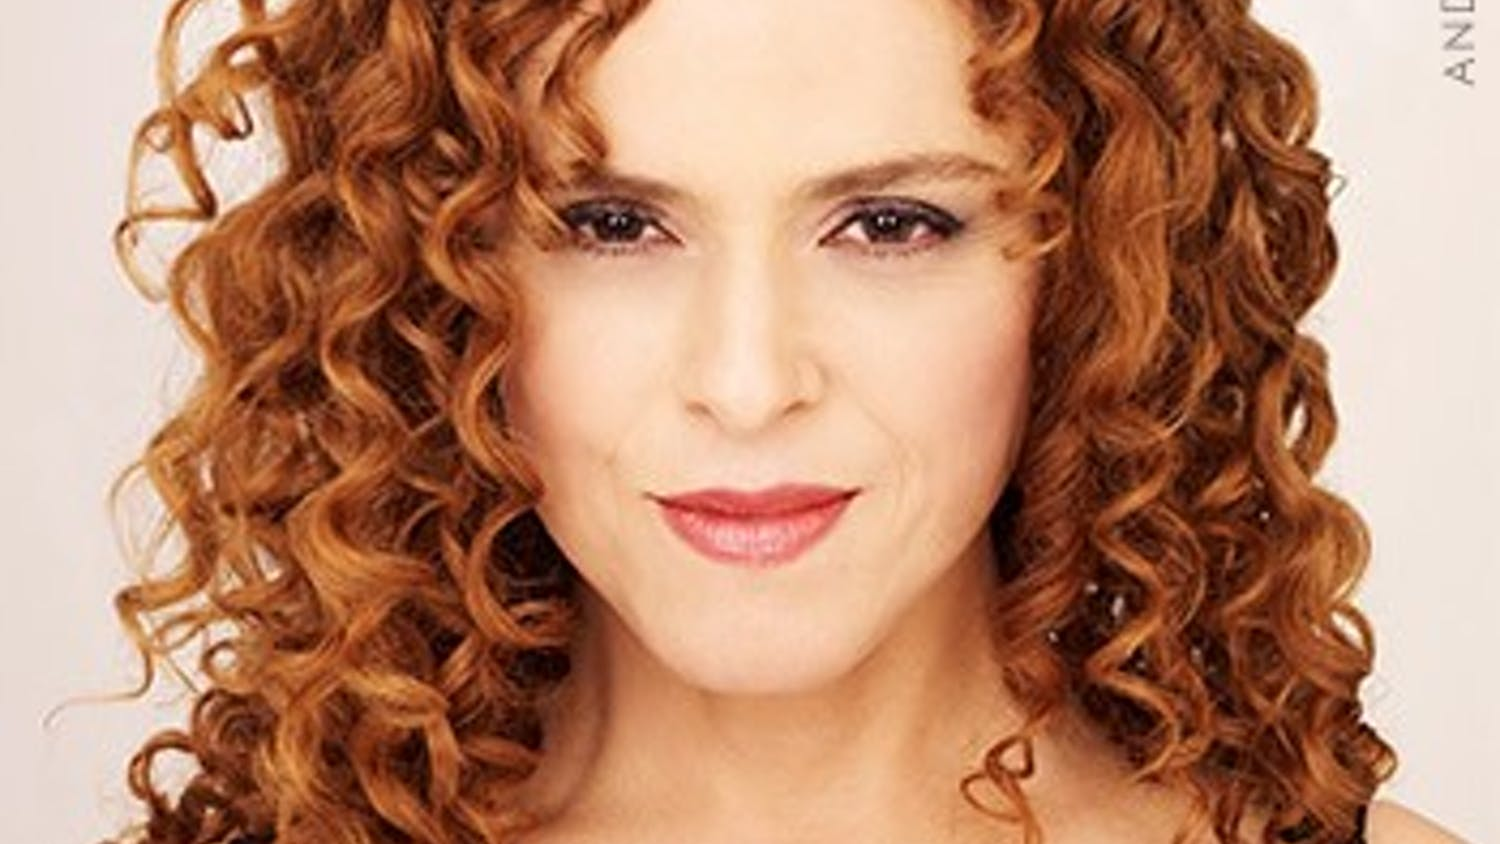 bernadette_peters_350x350.jpg